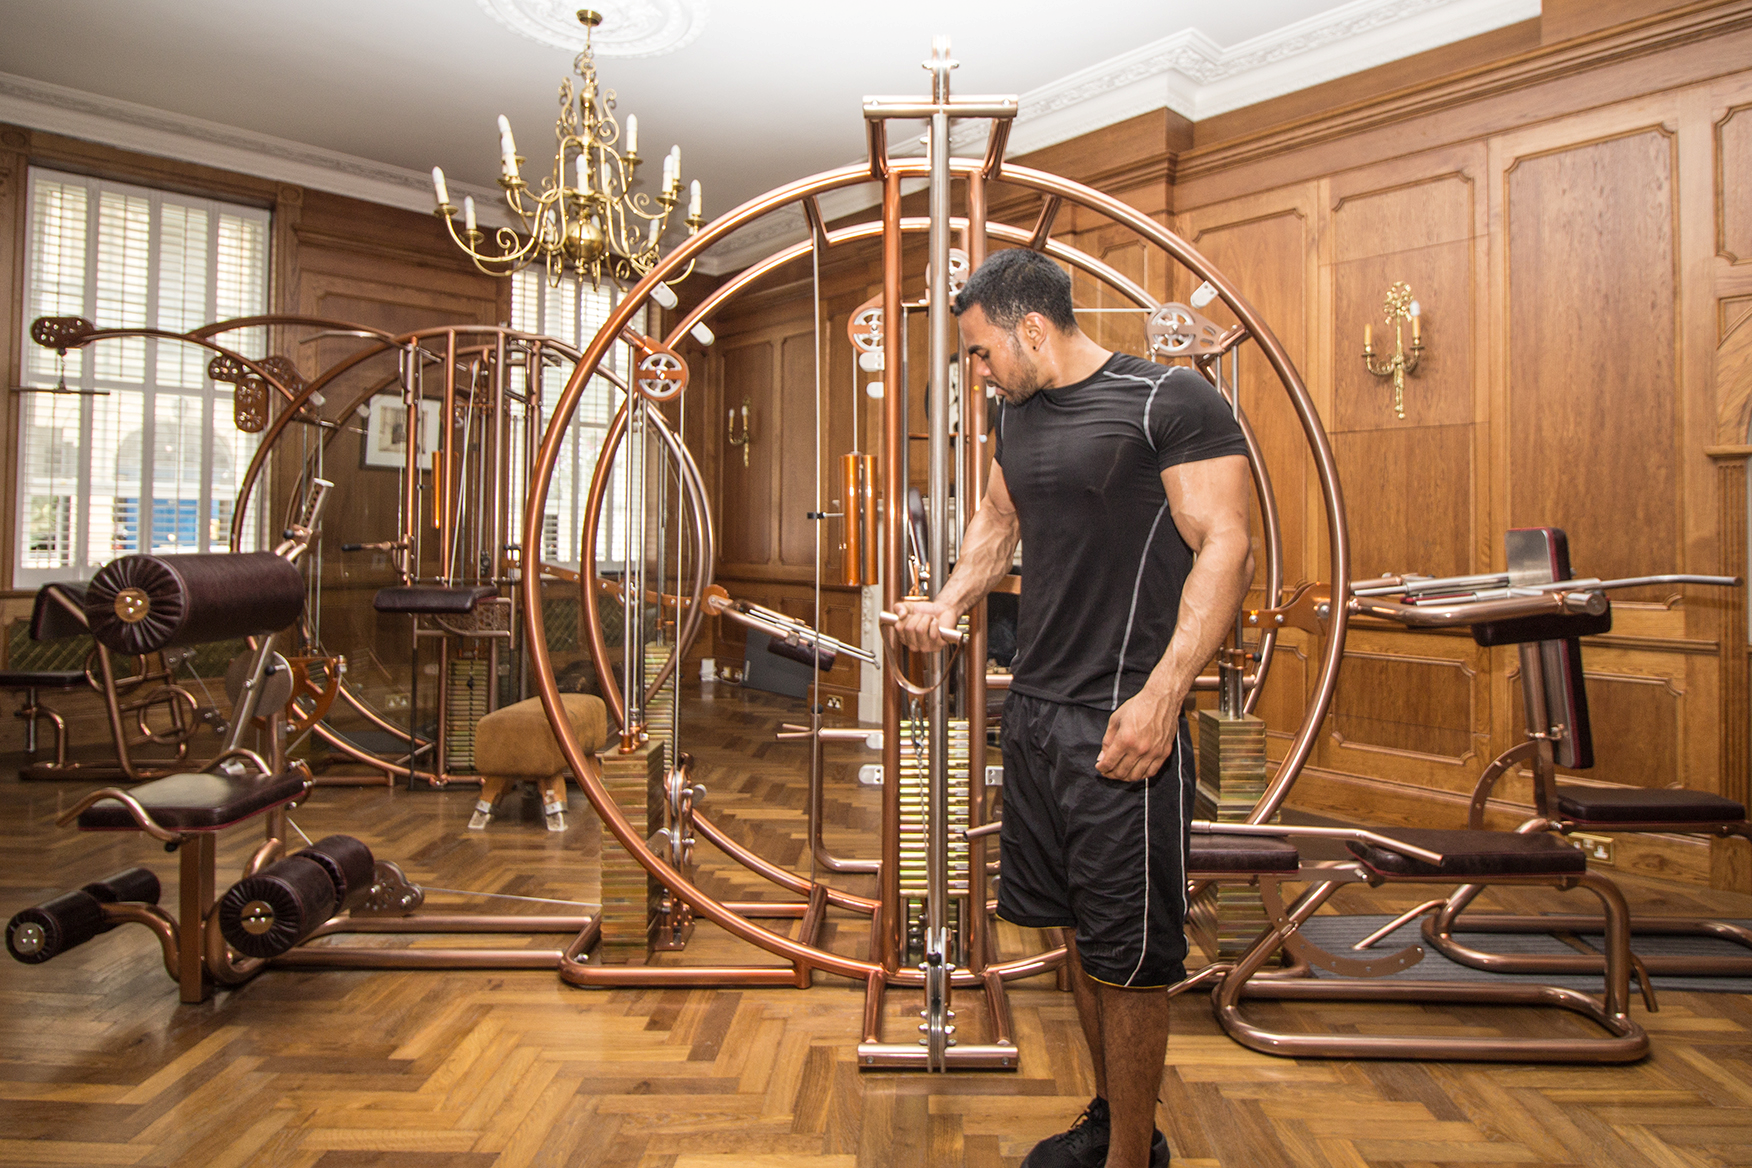 Inside London's most expensive gyms | The Independent